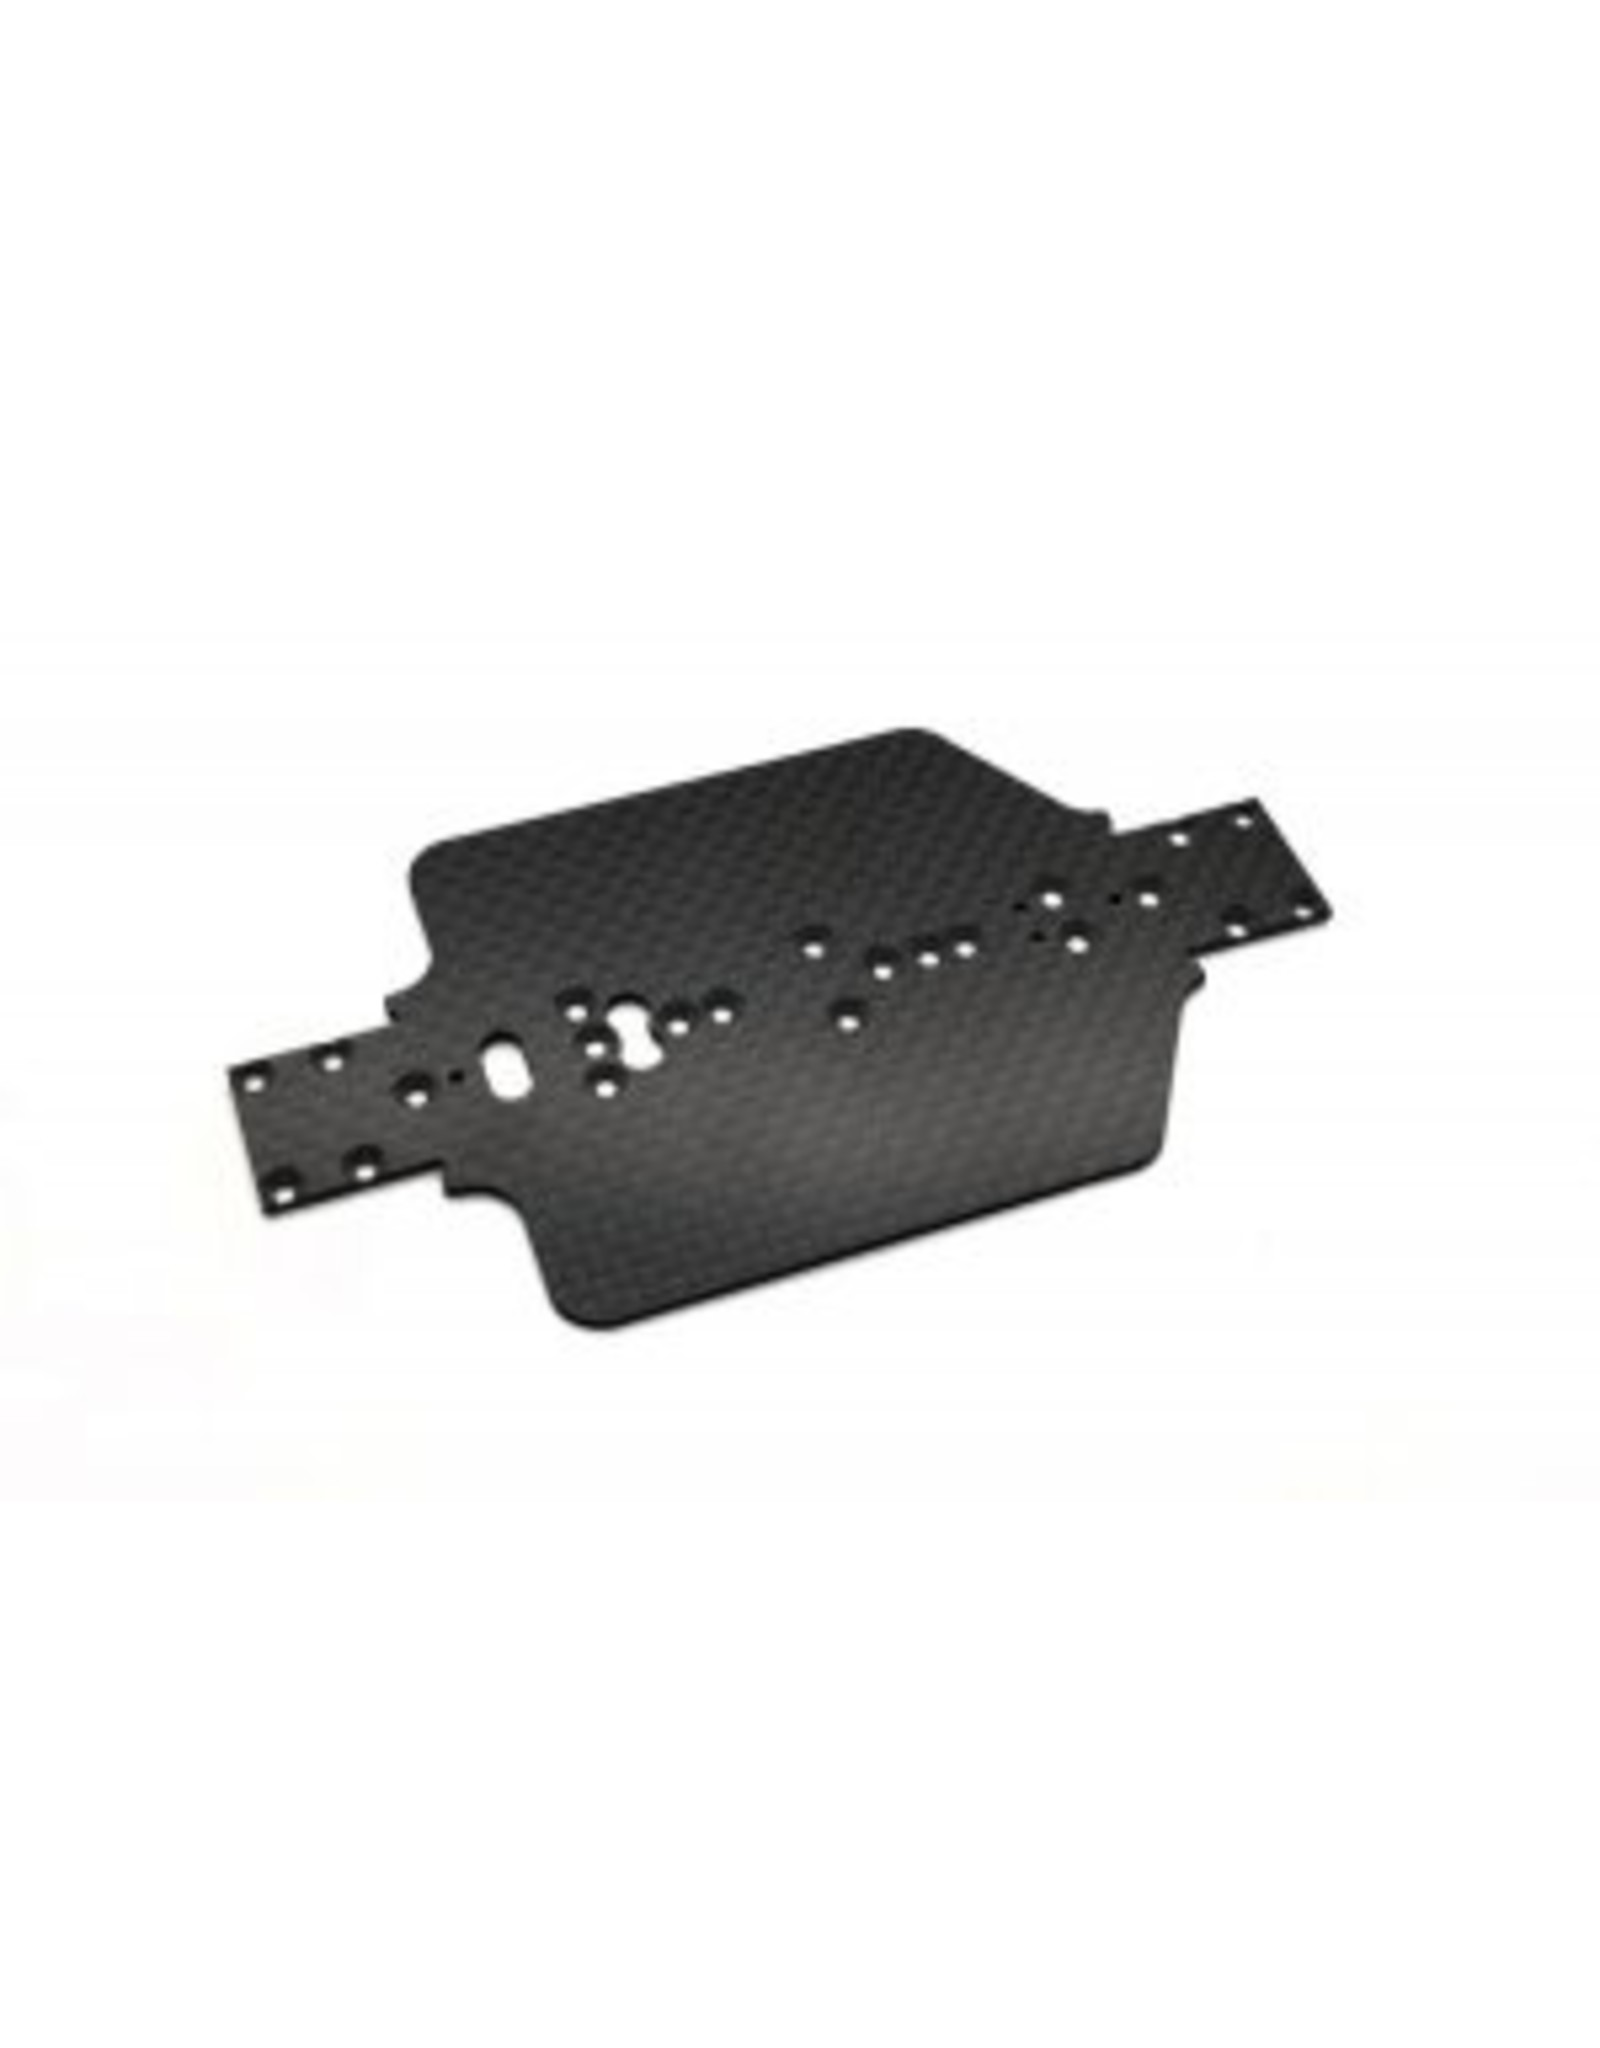 GL Racing GLA V2 Carbon Main Wide Chassis (98mm) (GLA-V2-041)